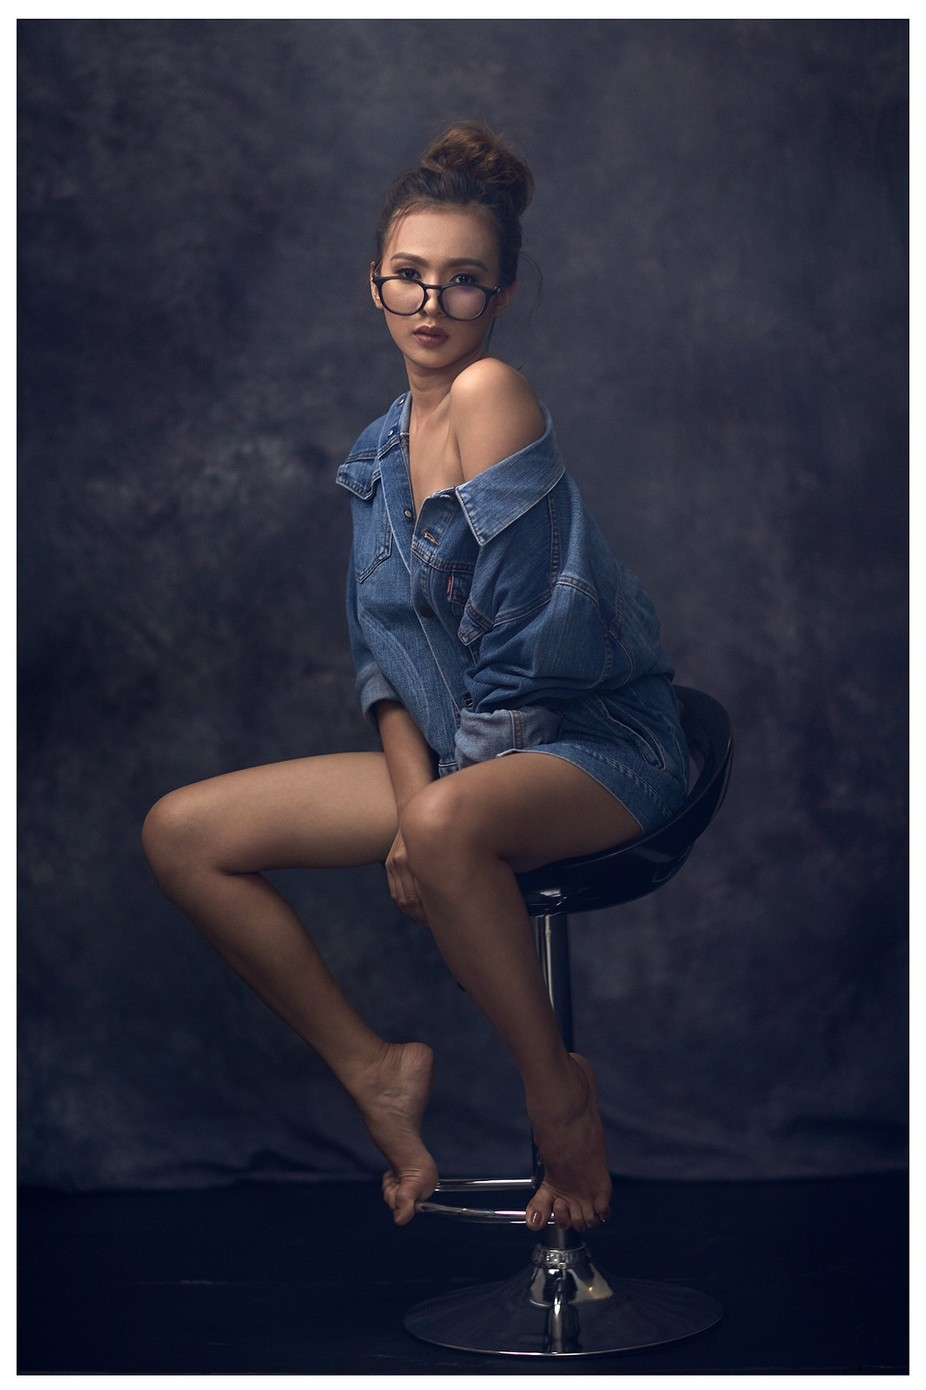 Jea by markquitos - Her In The Studio Photo Contest